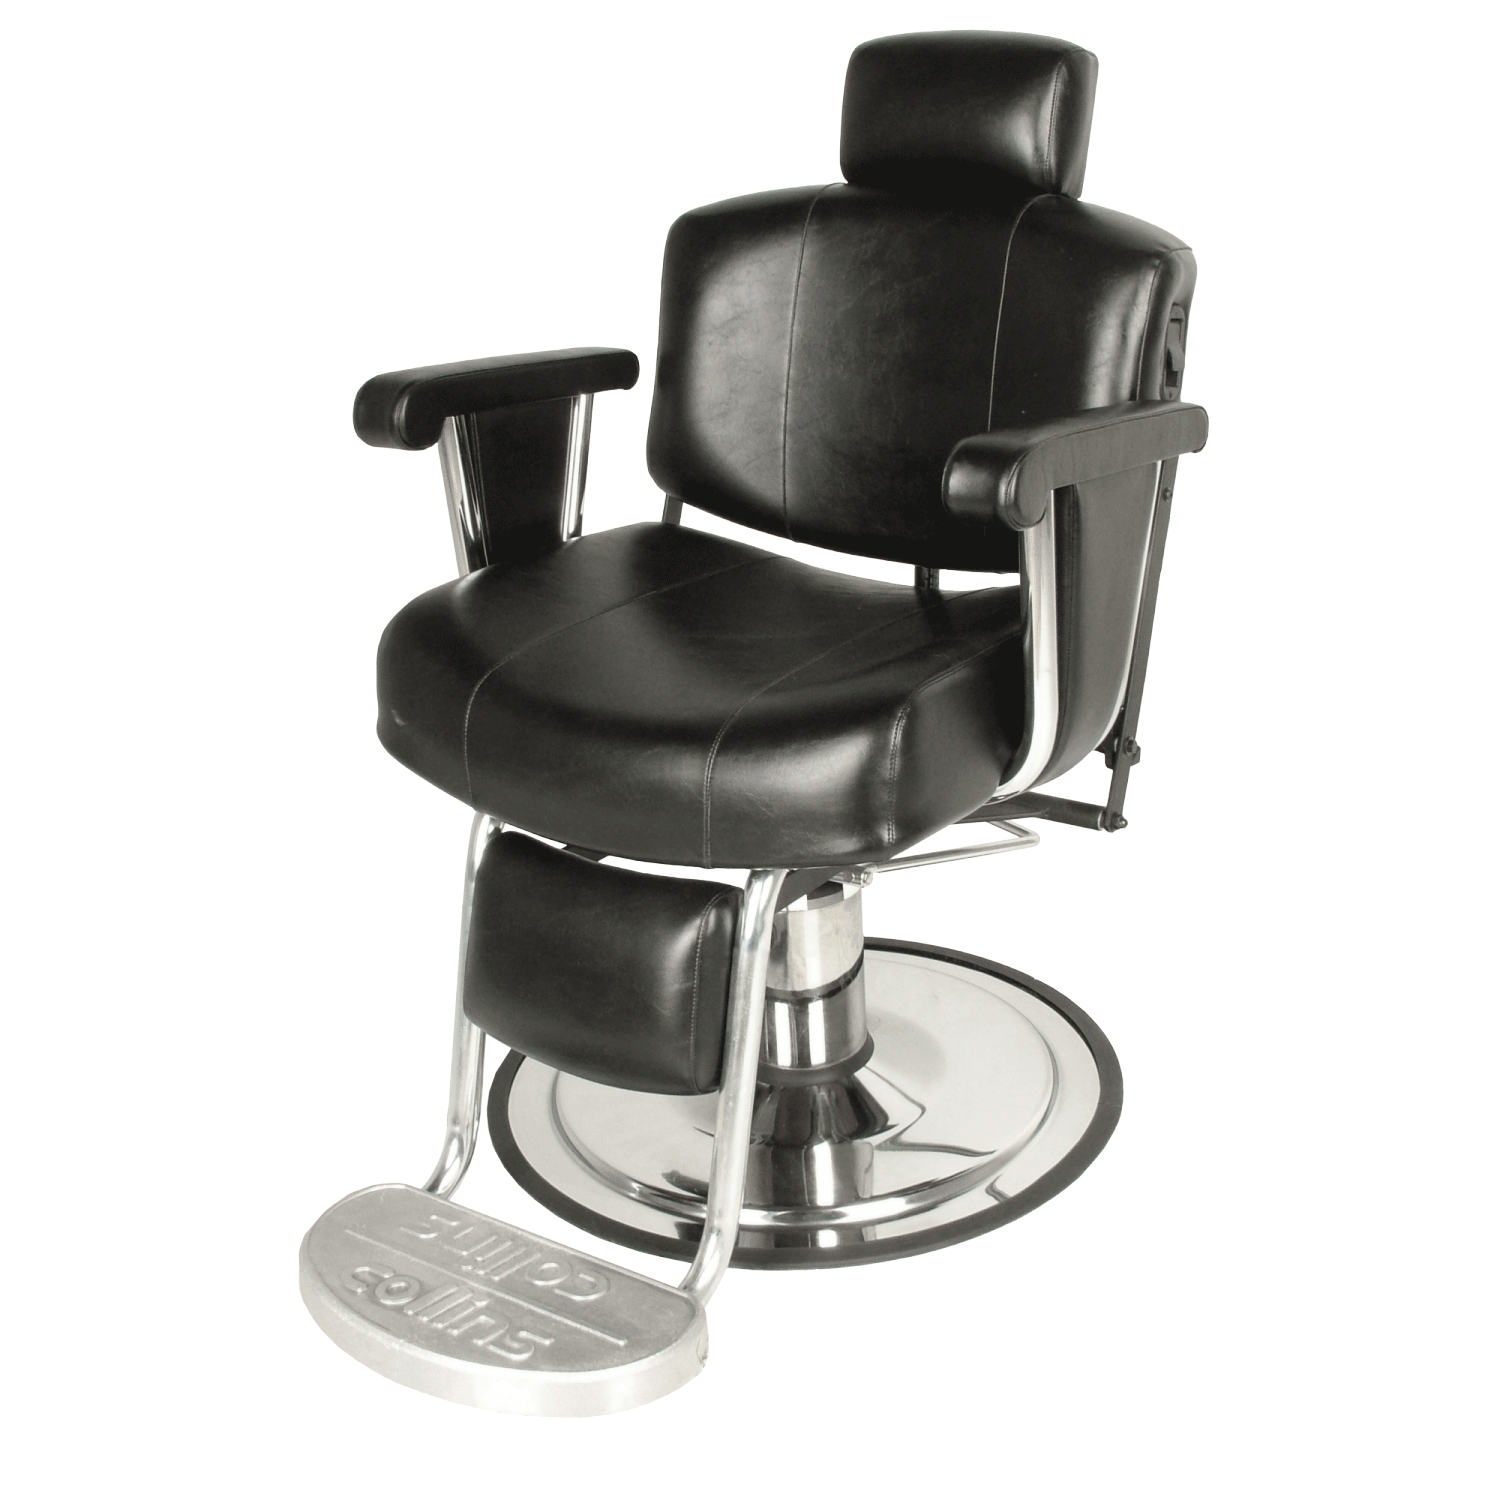 barber chair with kickout footrest wallaby black